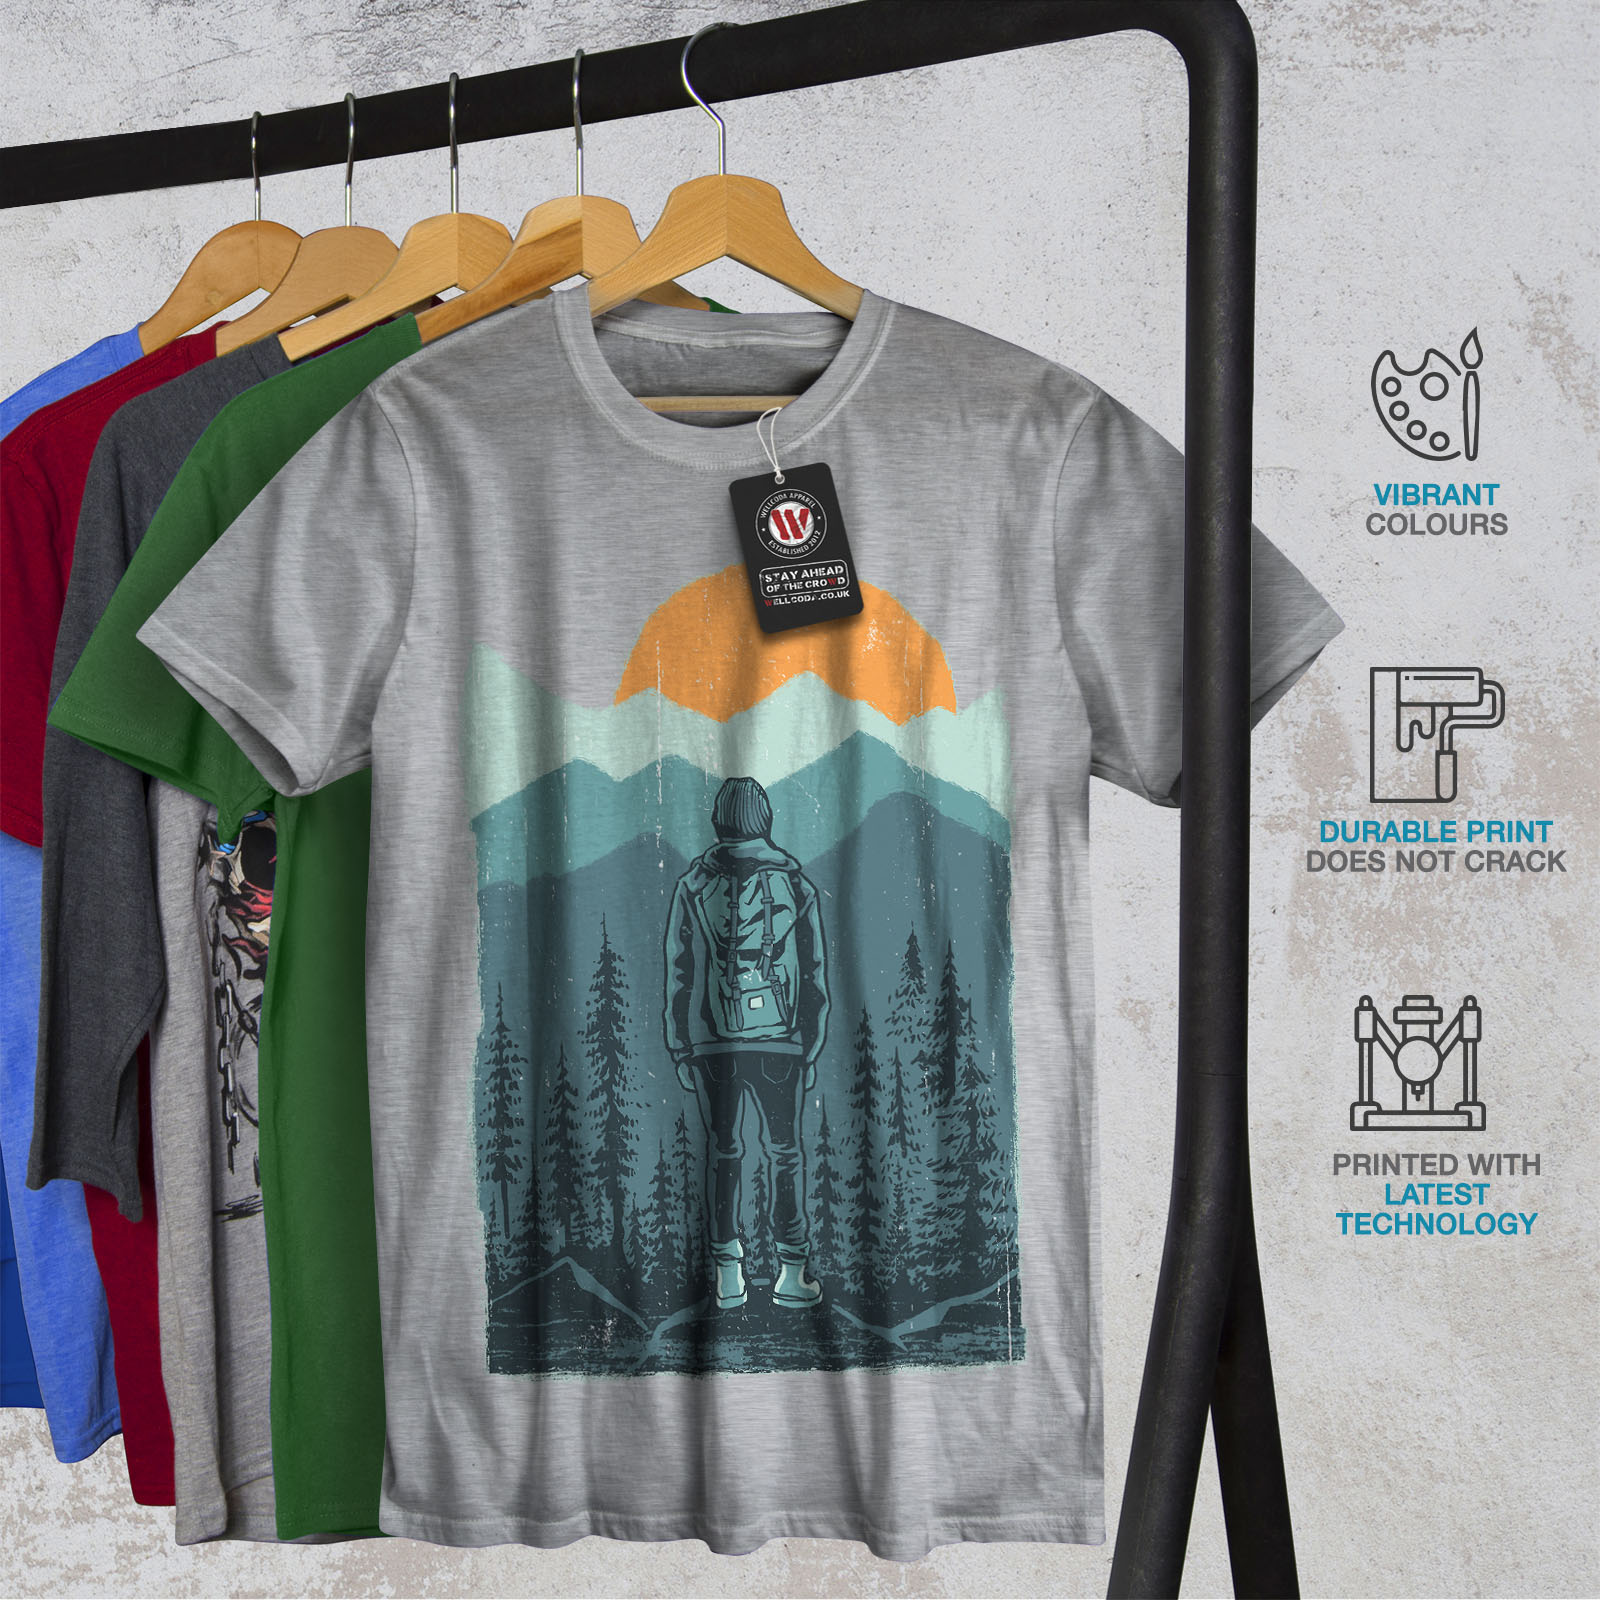 Wellcoda-SUNSET-Wilderness-CAMP-Da-Uomo-T-shirt-Wild-design-grafico-stampato-T-shirt miniatura 18